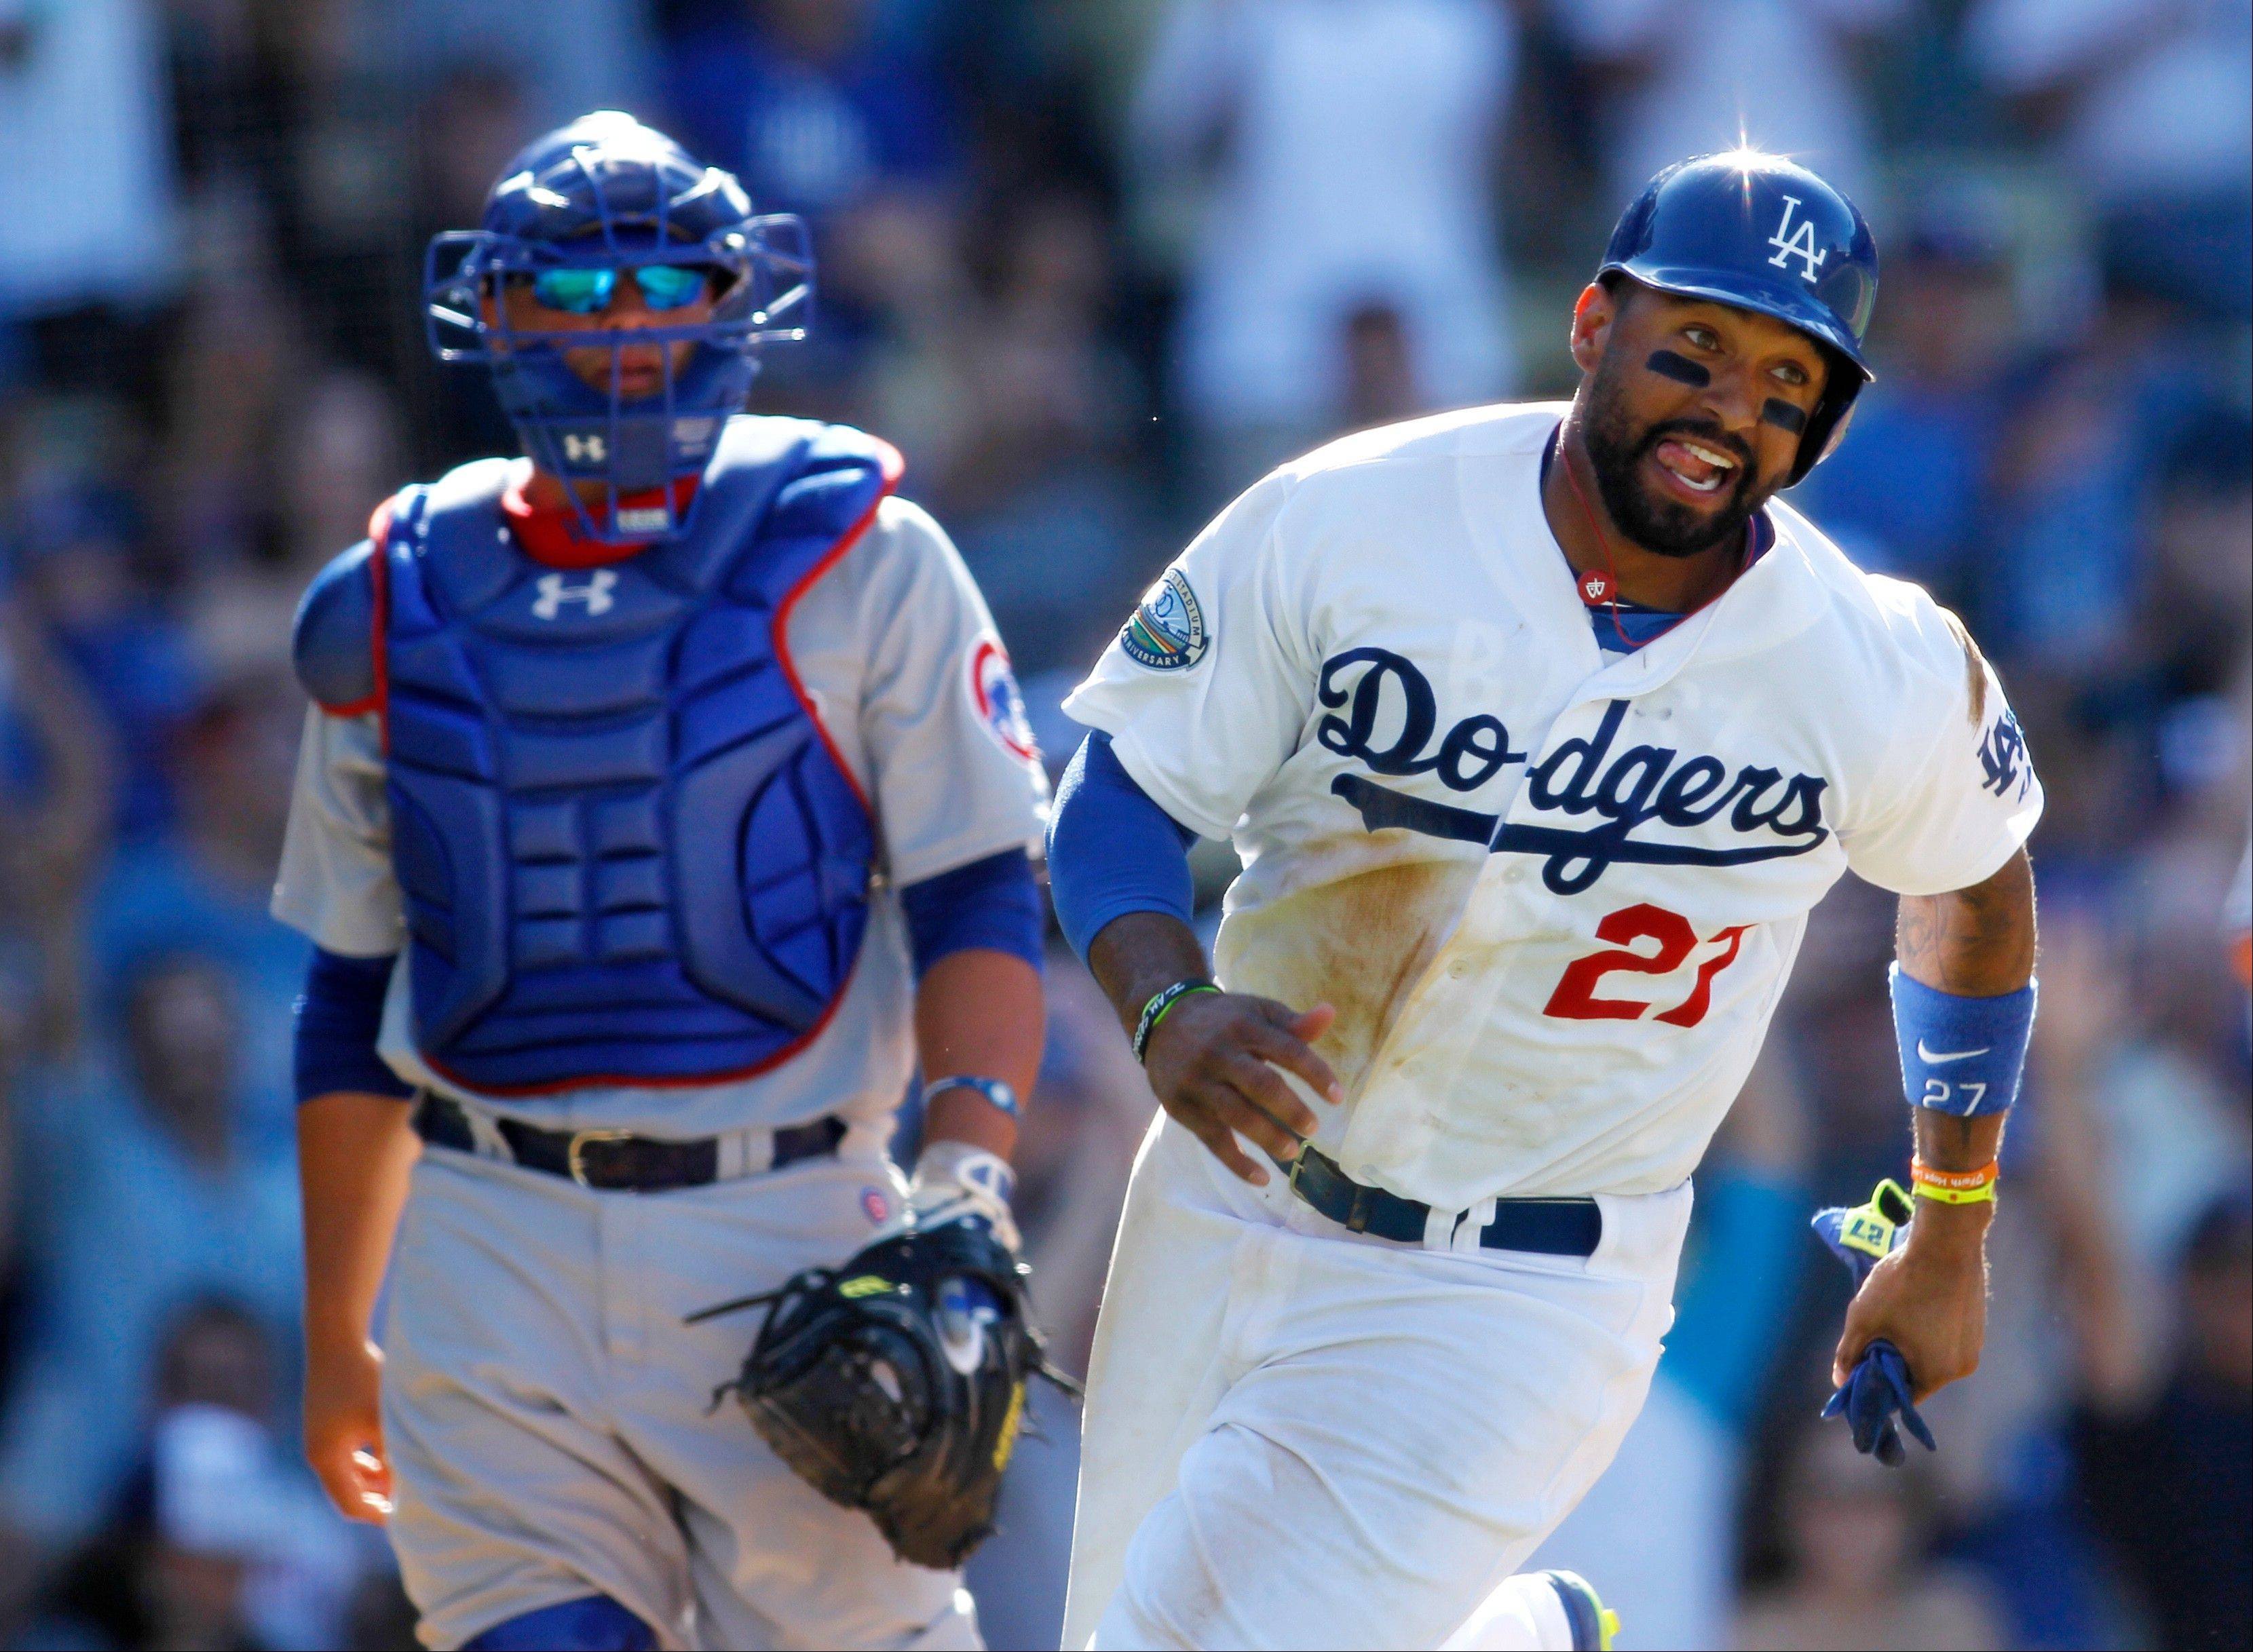 Los Angeles Dodgers outfielder Matt Kemp, right, celebrates as he runs toward Hanley Ramirez after he scored on a walk off single by Ramirez and Cubs catcher Welington Castillo, left, walks off the field Sunday.